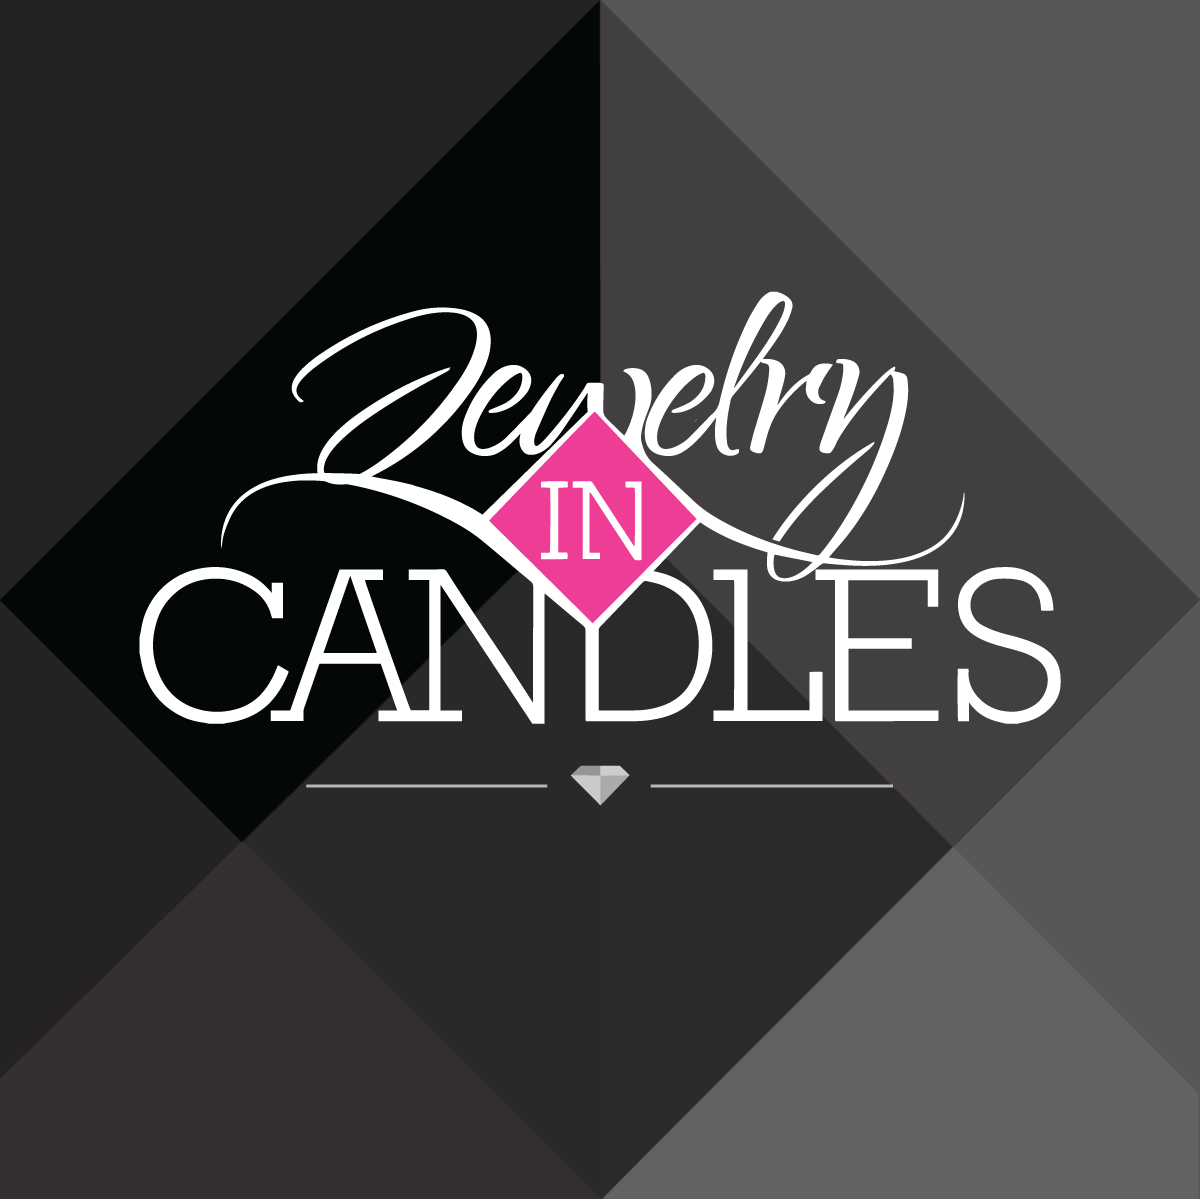 Become a Jewelry in Candles Rep for only $1 {Ends 1/7 at 11:59 pm EST.}